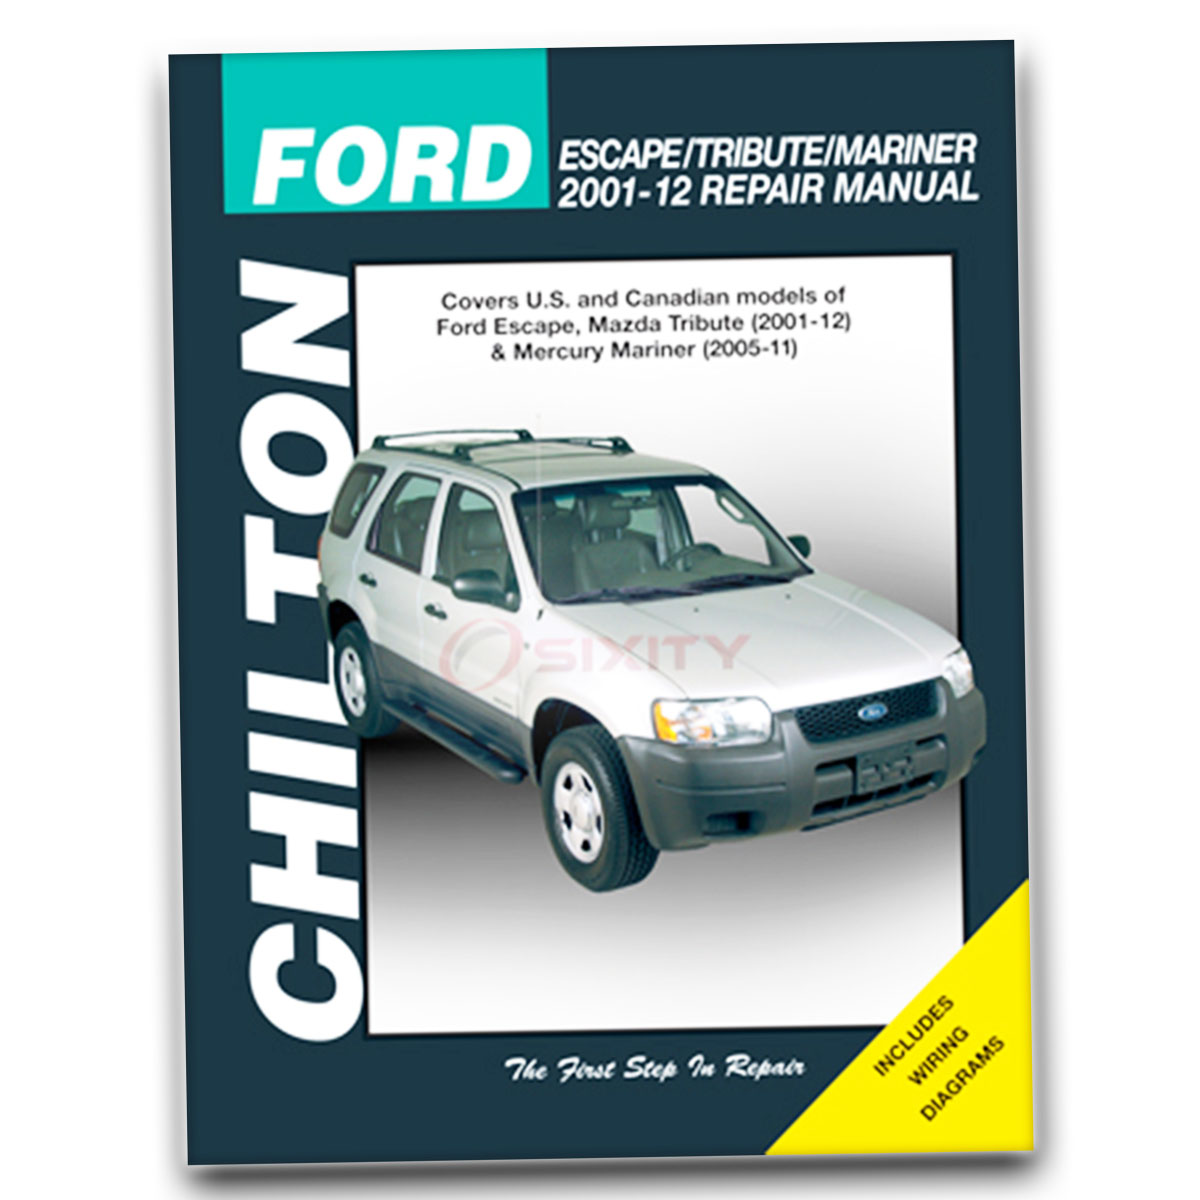 ford escape chilton repair manual limited hybrid xlt no boundaries rh ebay com 2001 ford escape service manual free 2004 Escape